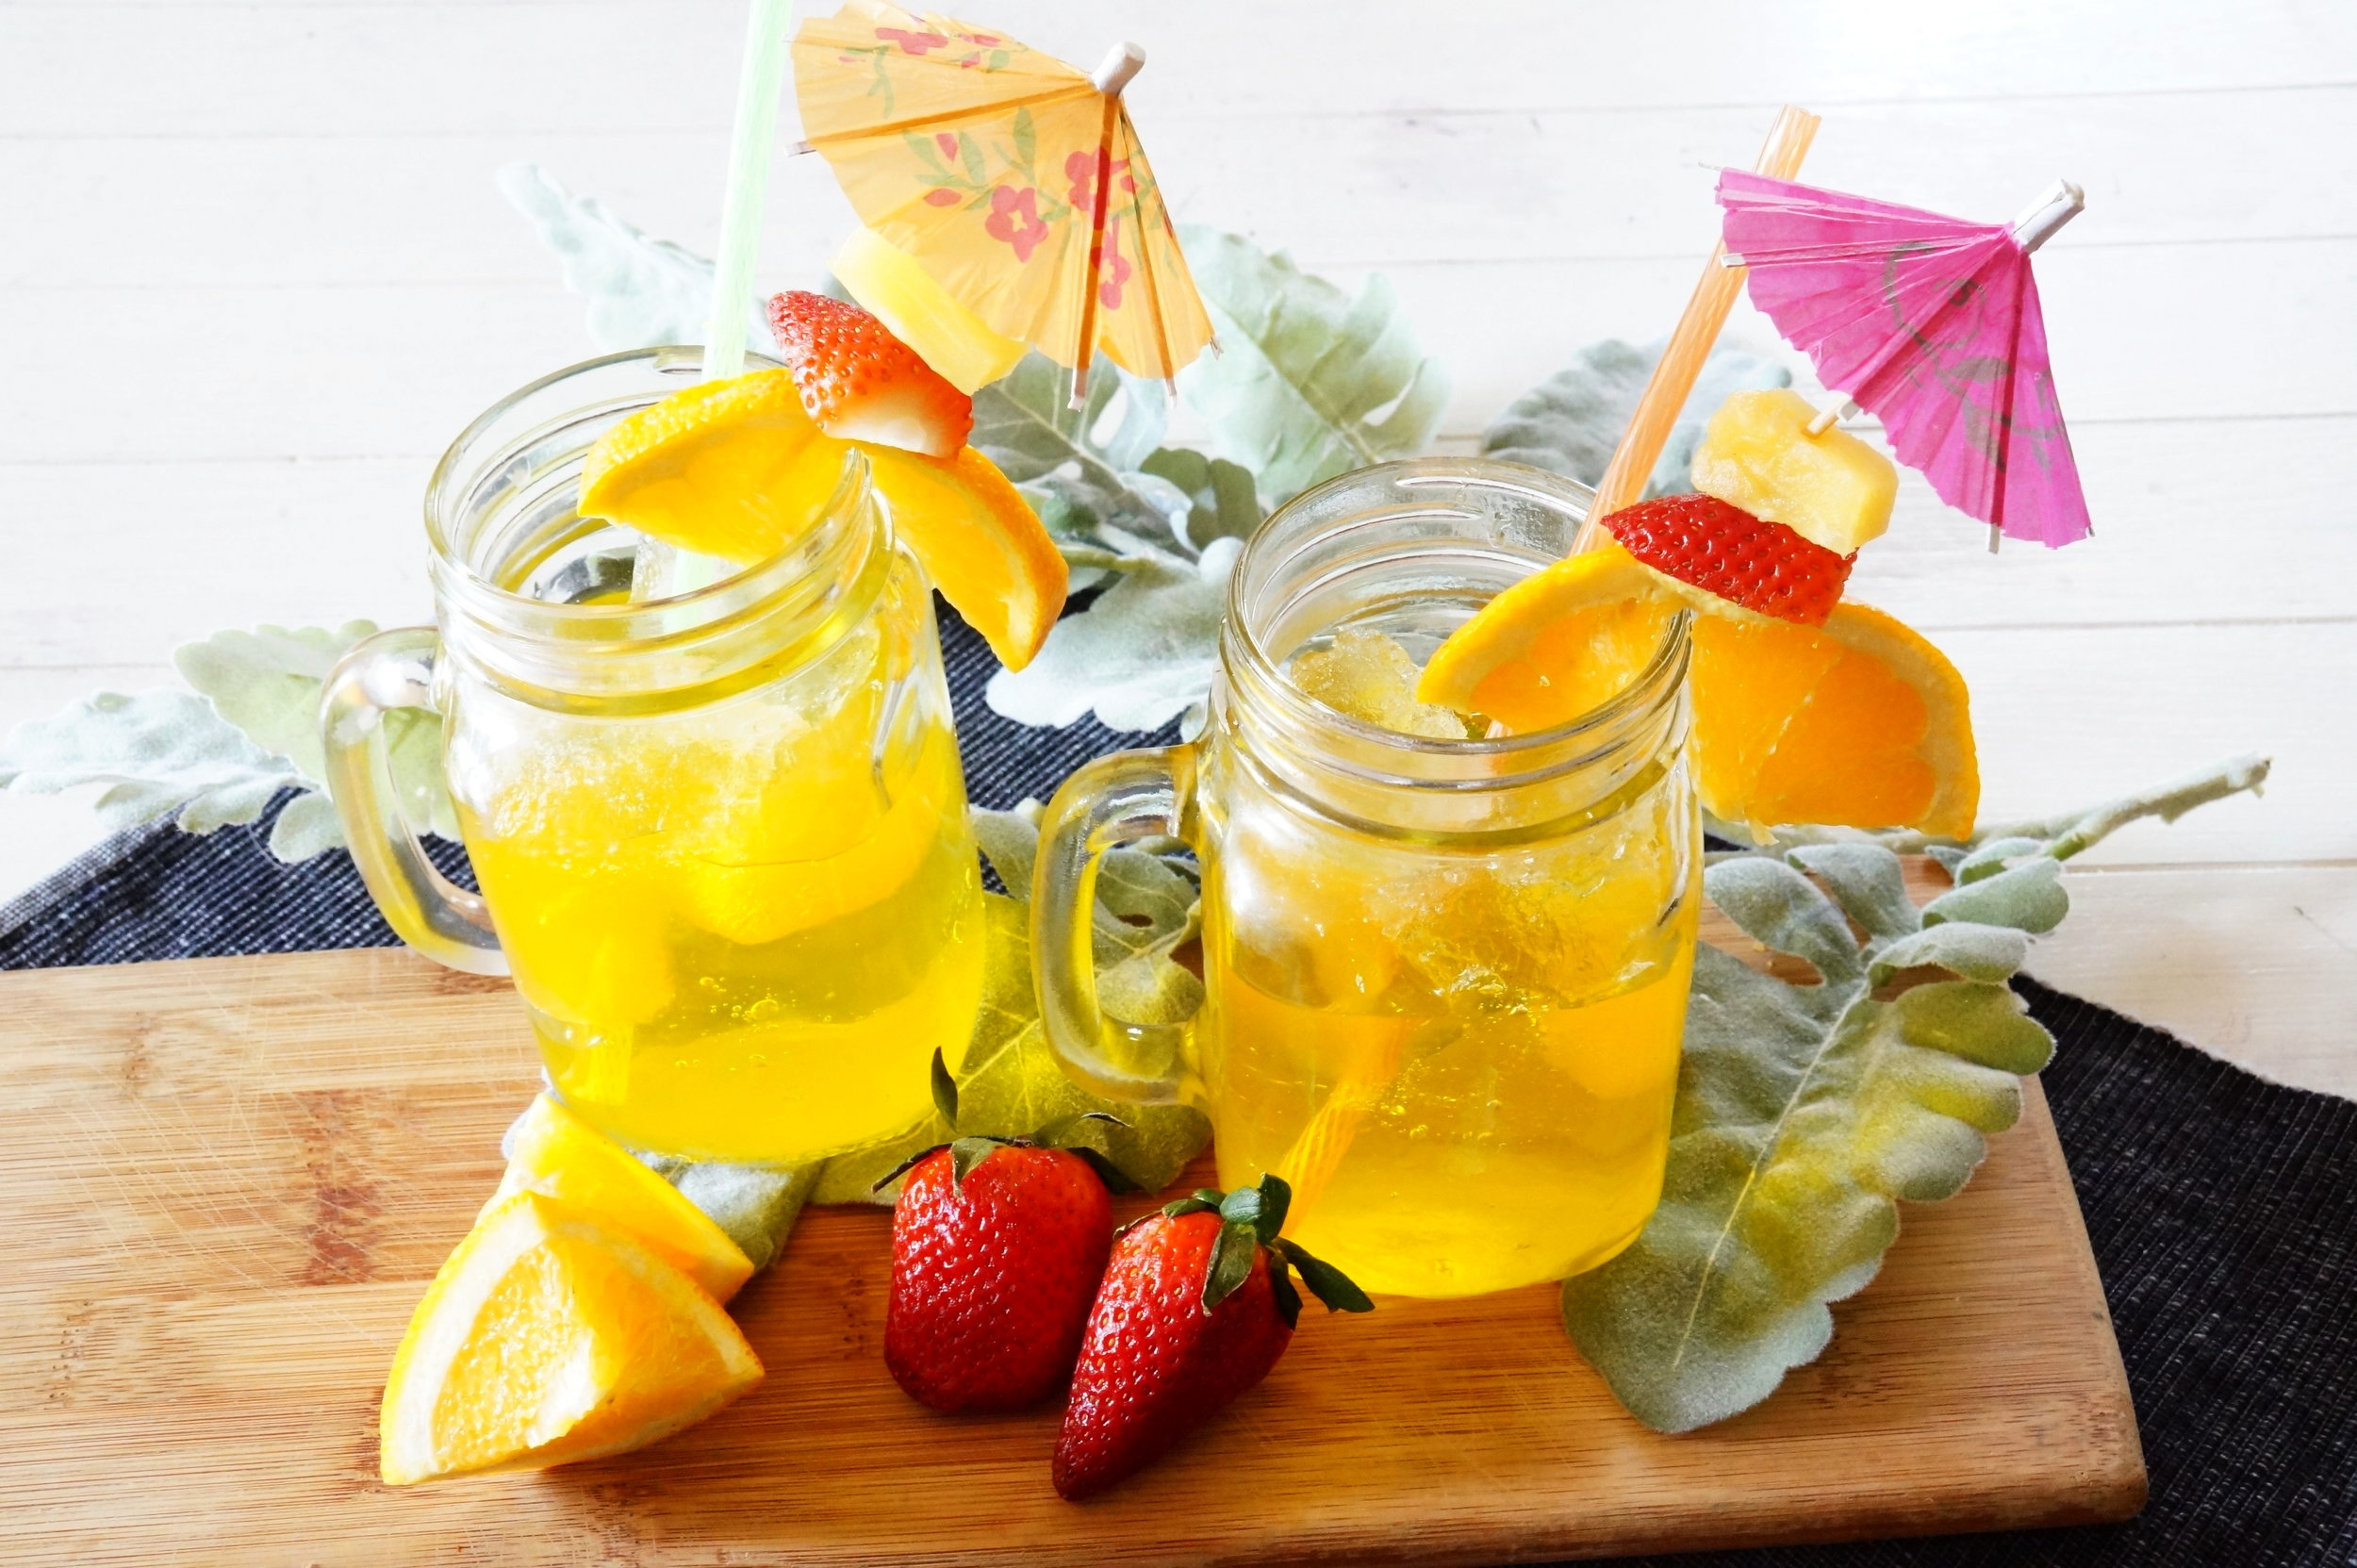 DIY April fool's prank, DIY April fool's drink, DIY prank drink, trick drink, fake fruity drink, undrinkable drink, DIY jello drink, kid friendly prank, fake tropical drink, fake ice, DIY fake ice,